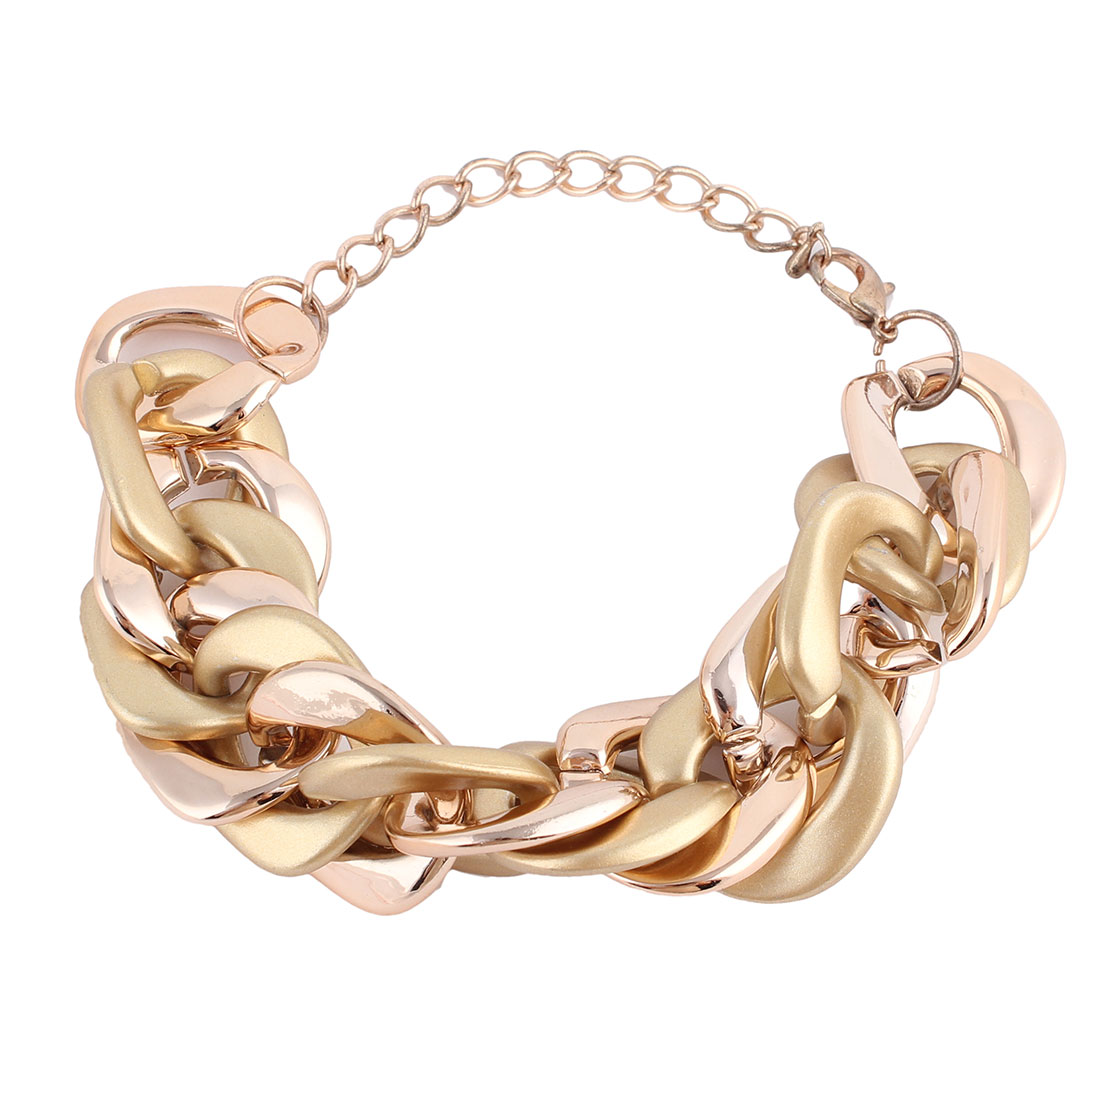 Plastic Adjustable Circle Chain Lobster Buckle Bracelet Bangle Gold Tone